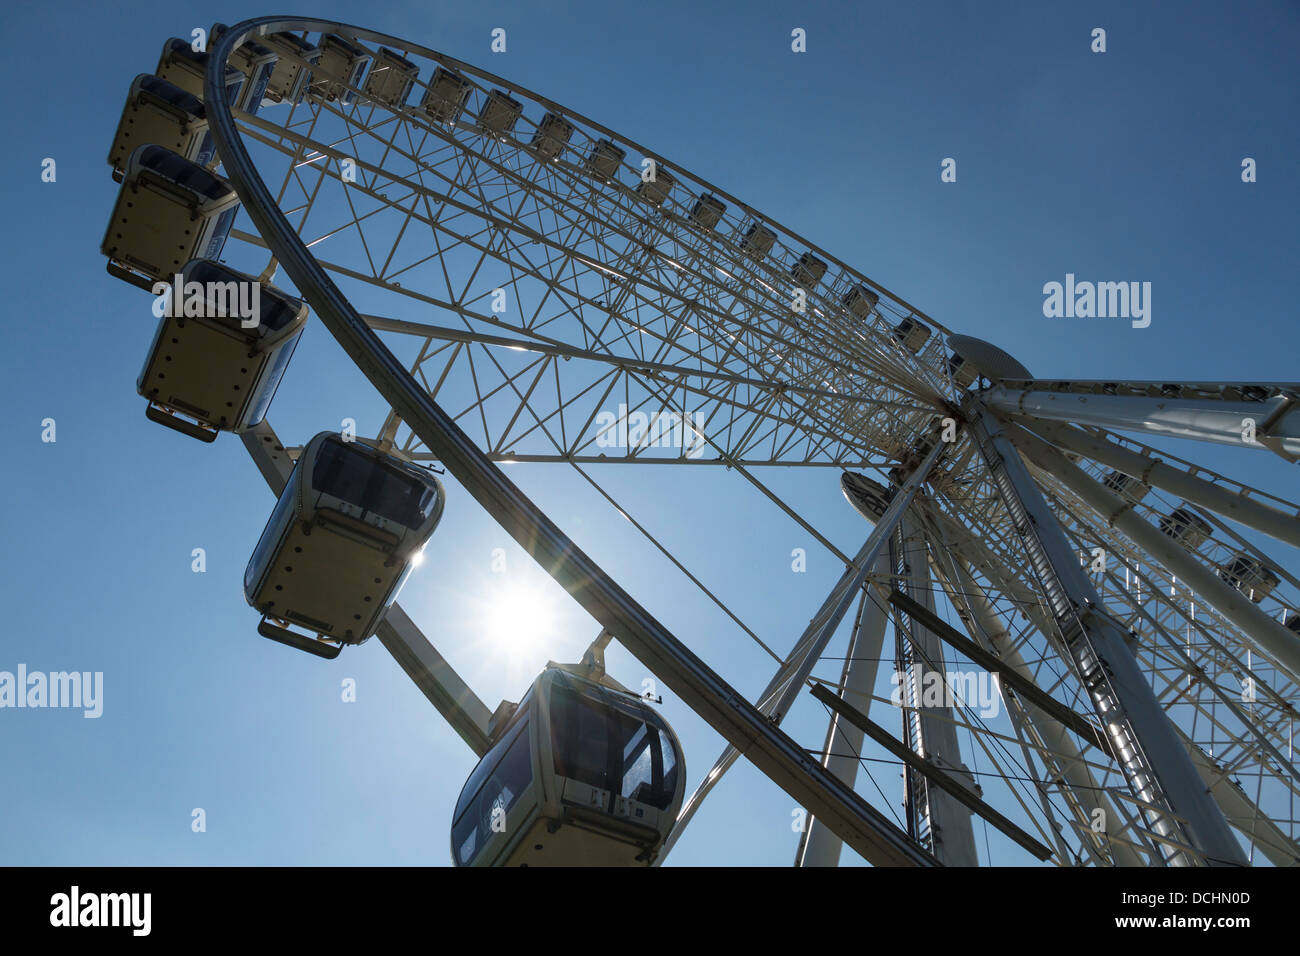 York City observation big wheel view skyline horizon, Yorkshire, England - Stock Image